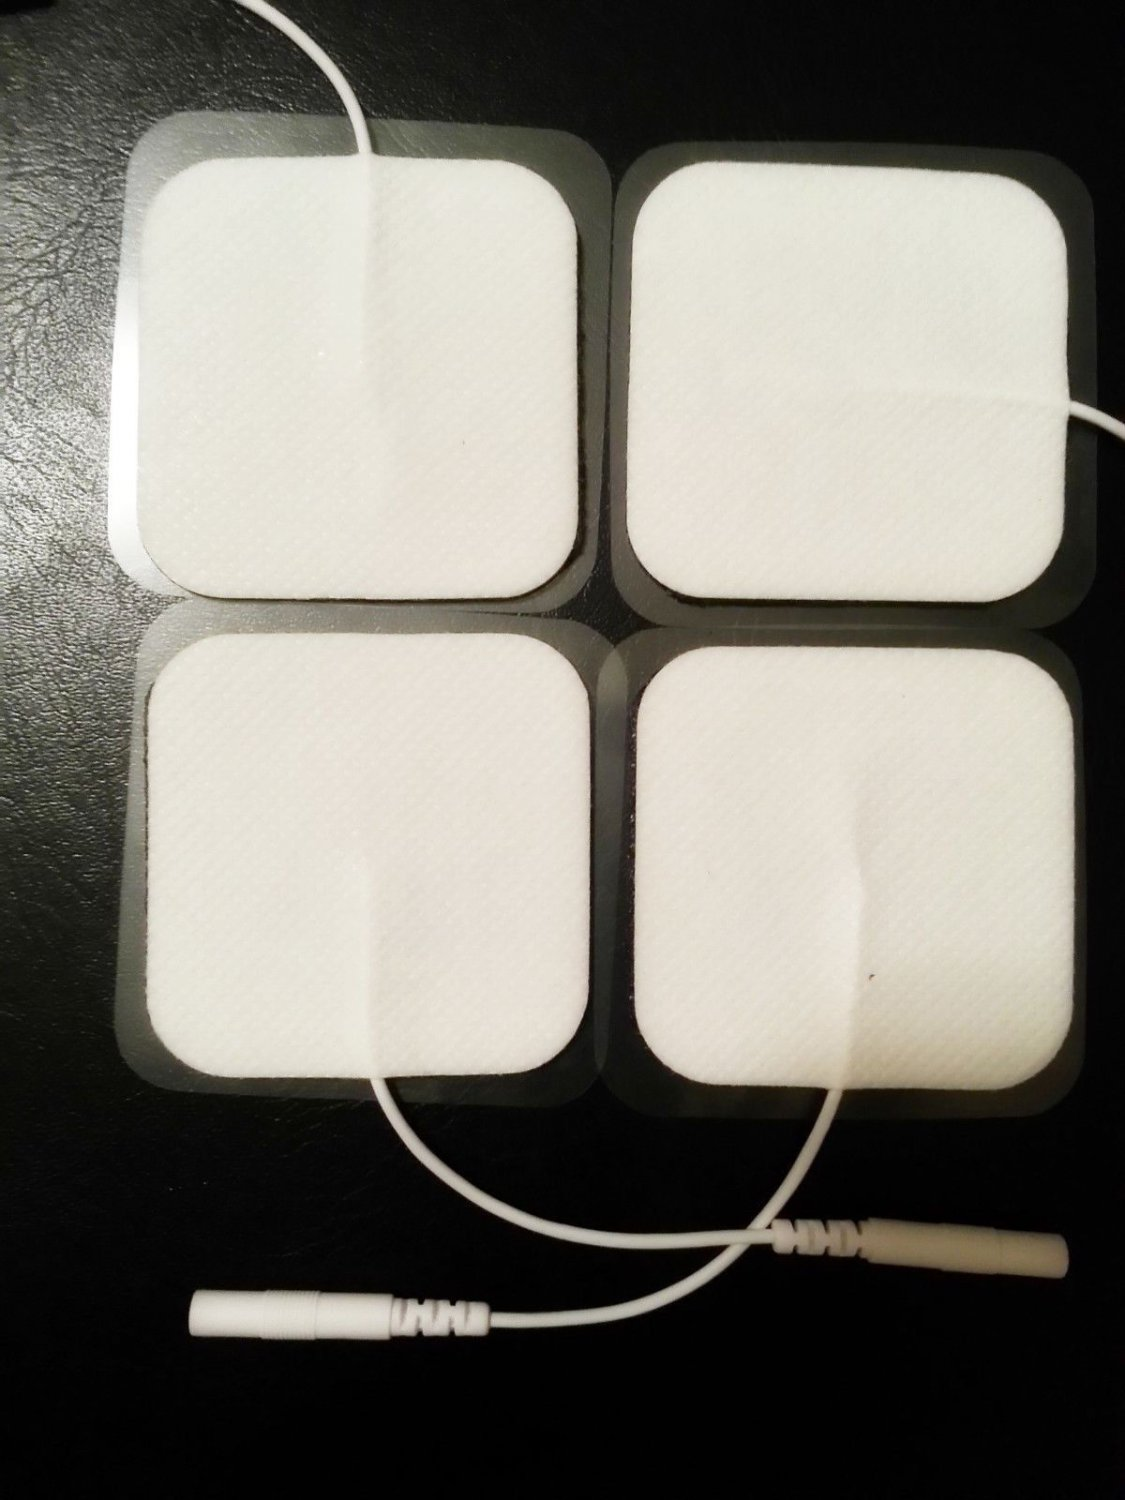 """SQUARE SHAPED GEL ELECTRODES (16) SELF ADHESIVE MASSAGE PADS 2""""X2"""" FOR TENS EMS"""